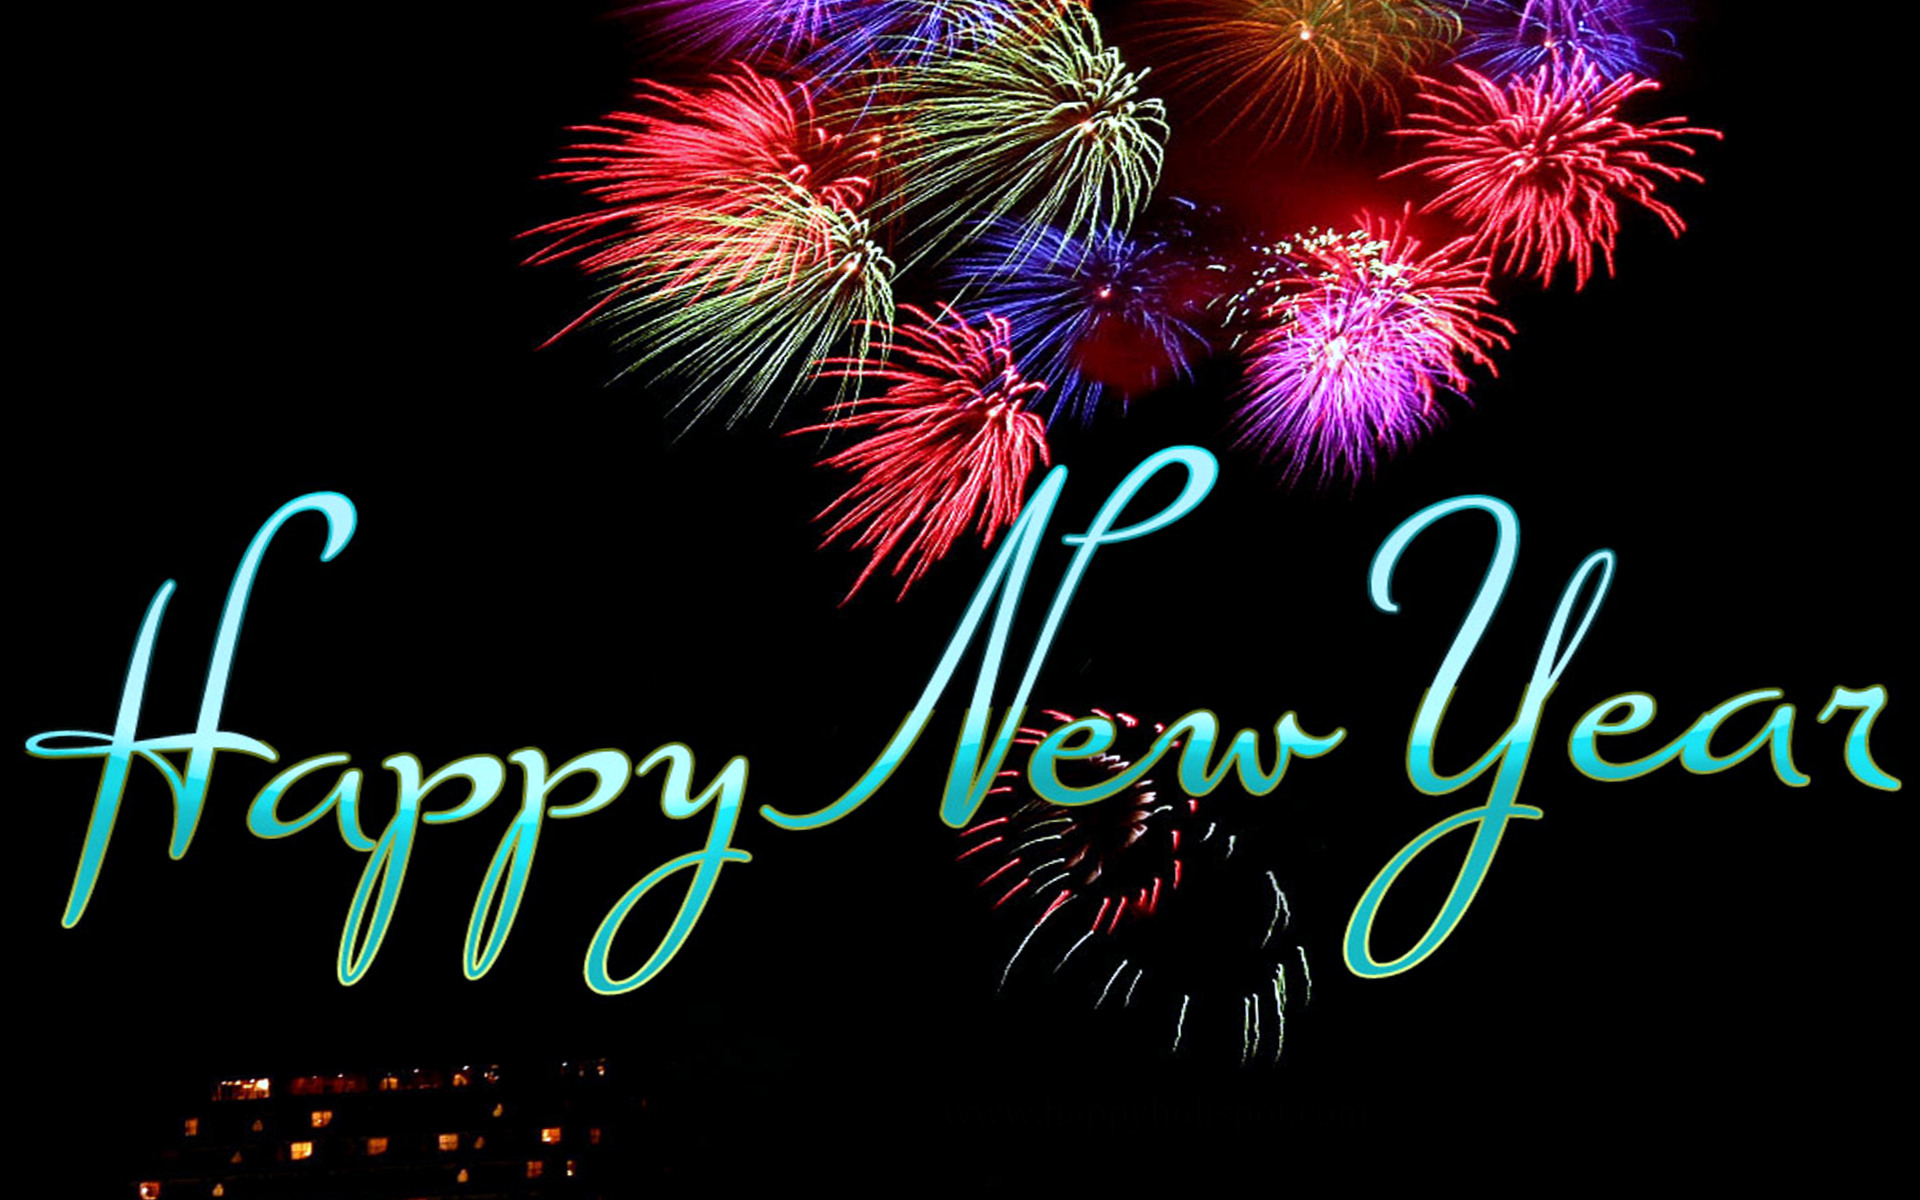 Happy New Year 2016 Wallpapers, Pictures, Images